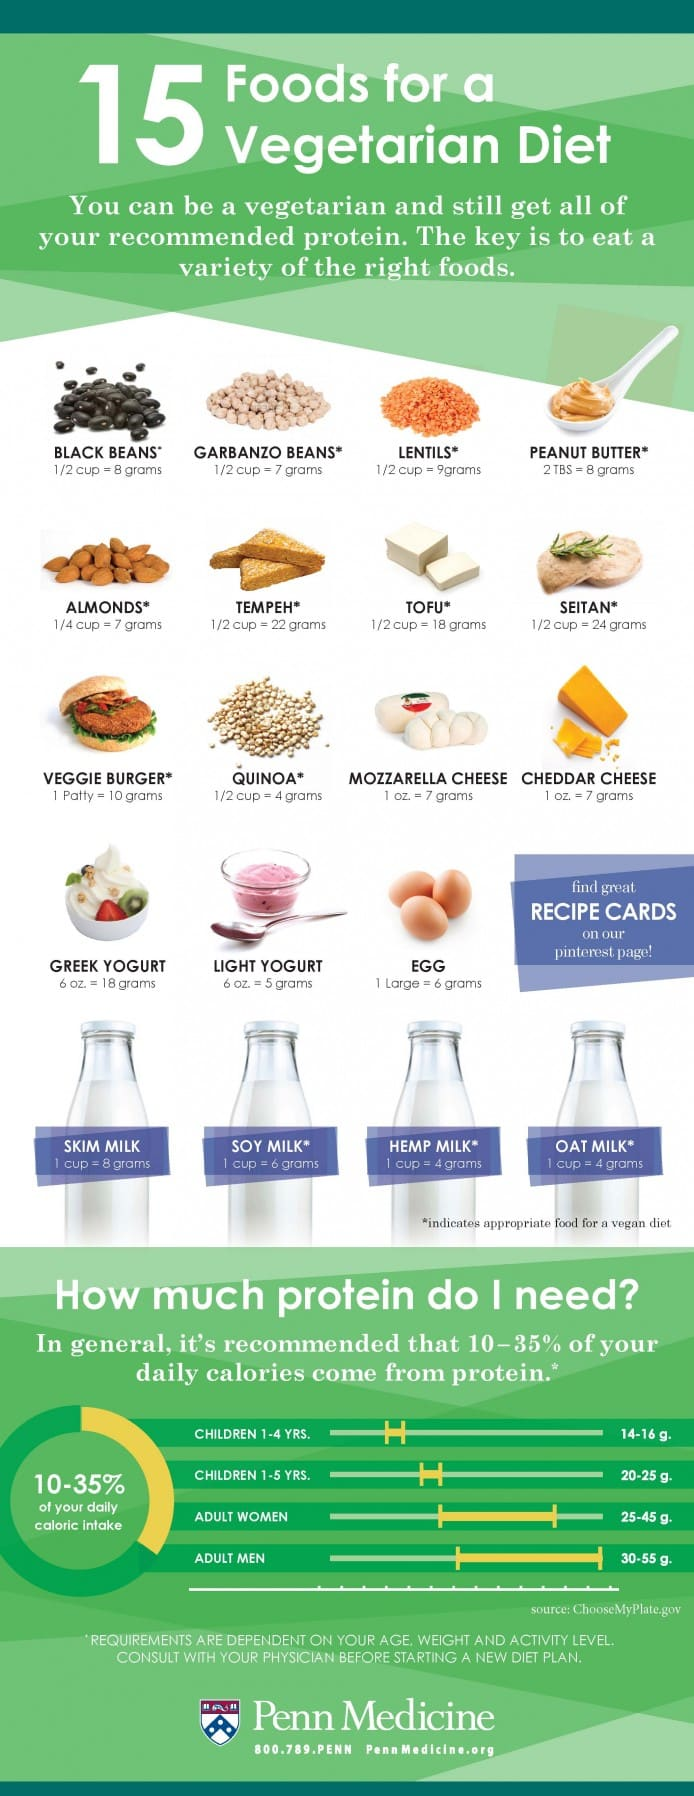 15-foods-for-a-vegetarian-diet_51e453bde7b46_w694.jpg